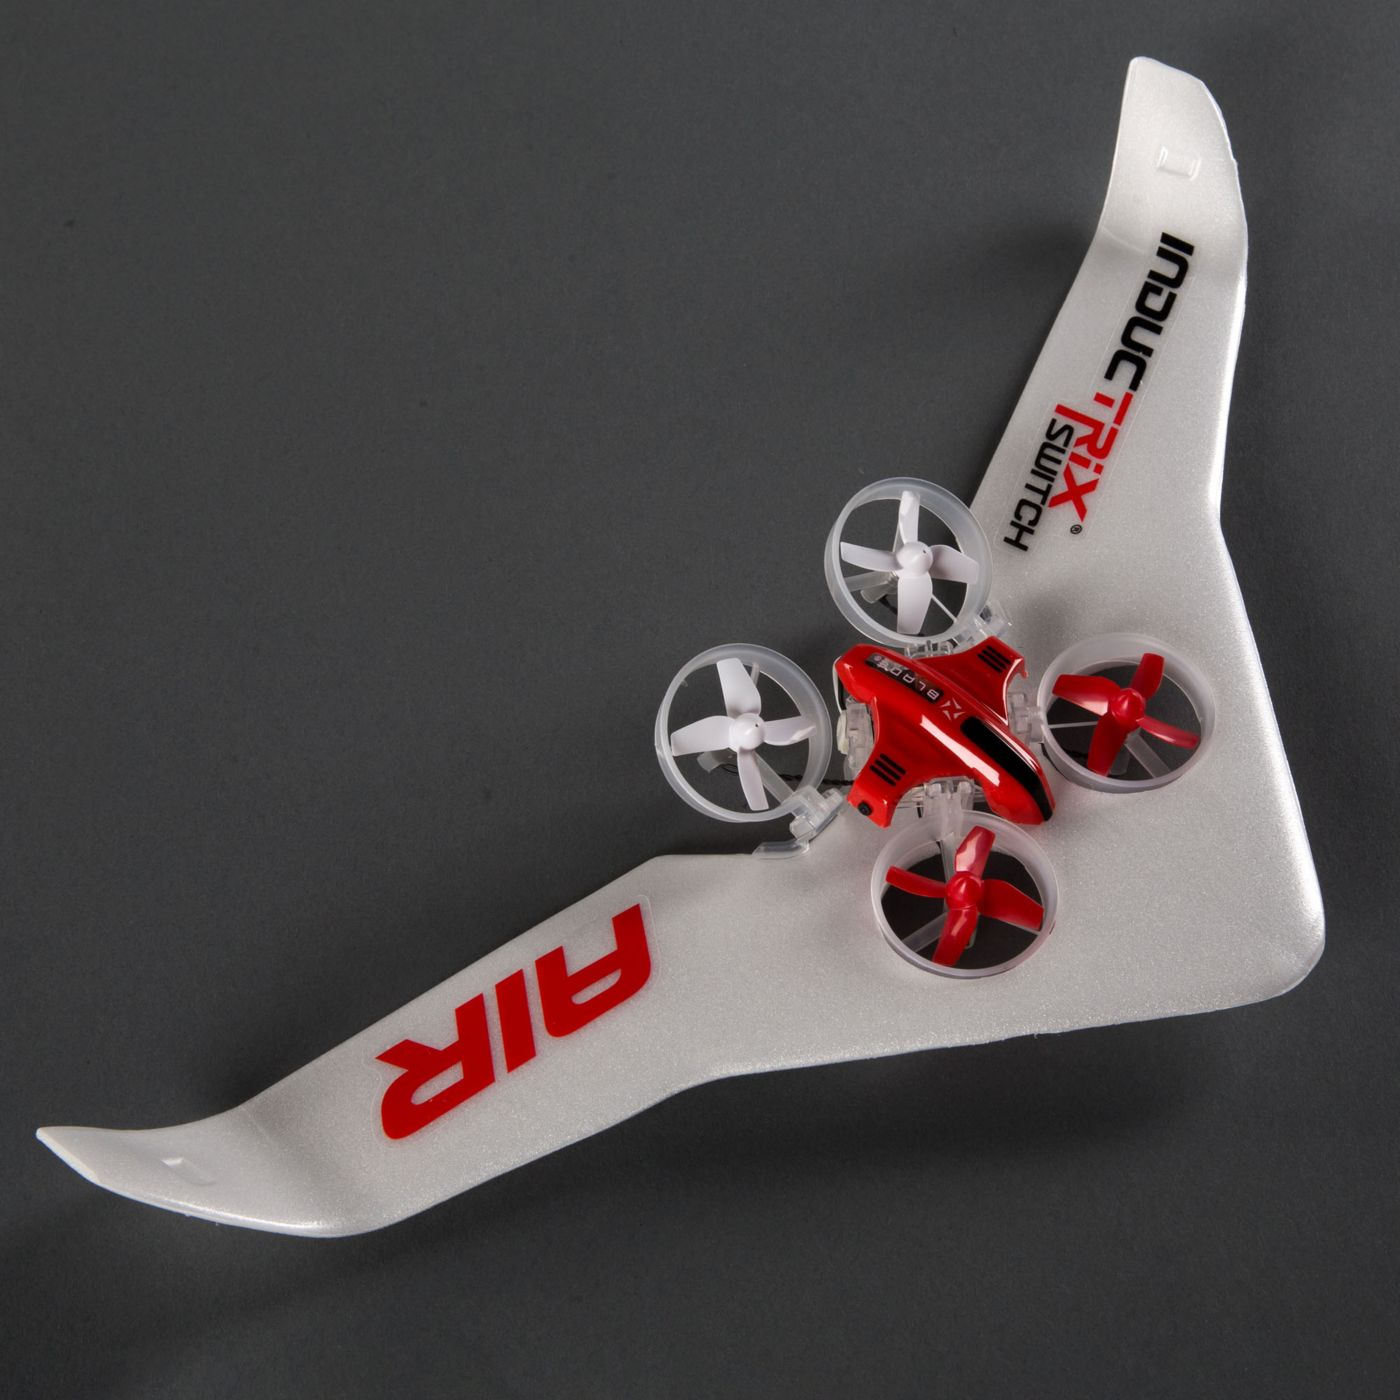 Blade inductrix Switch AIR RTF Aereo Drone rc 02